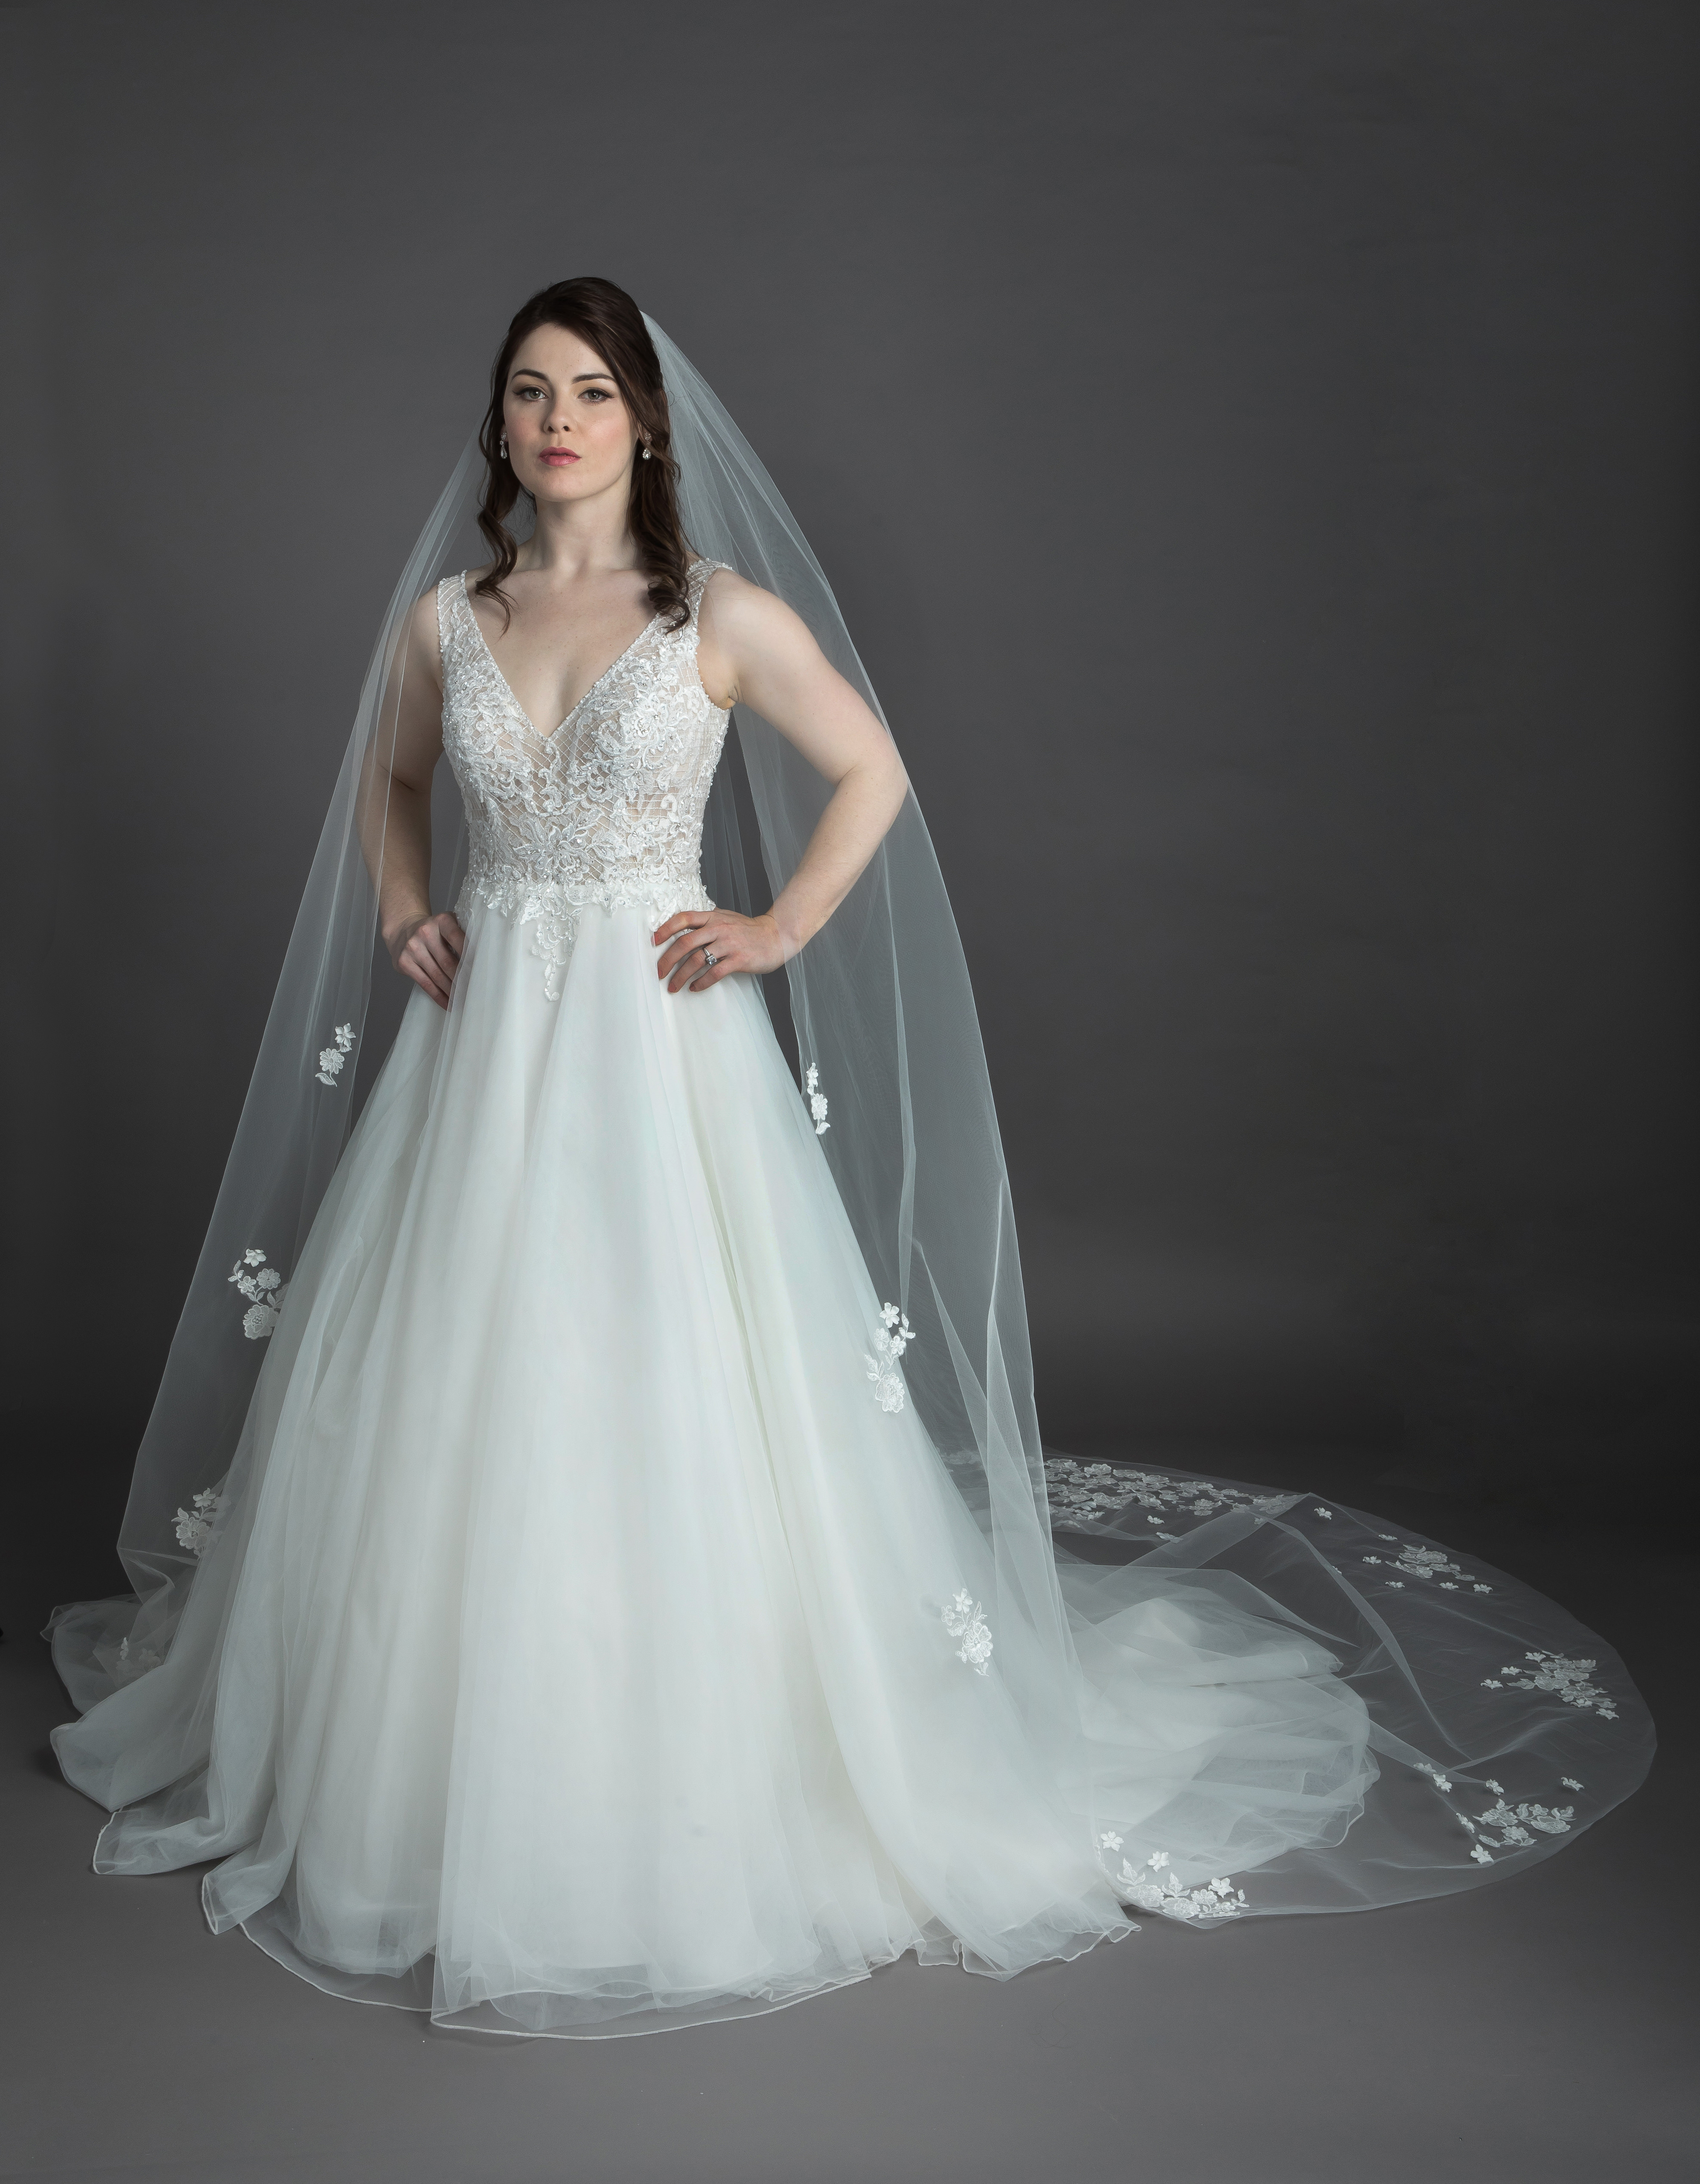 Bridal Classics Marquise Veil Collection MV-2477